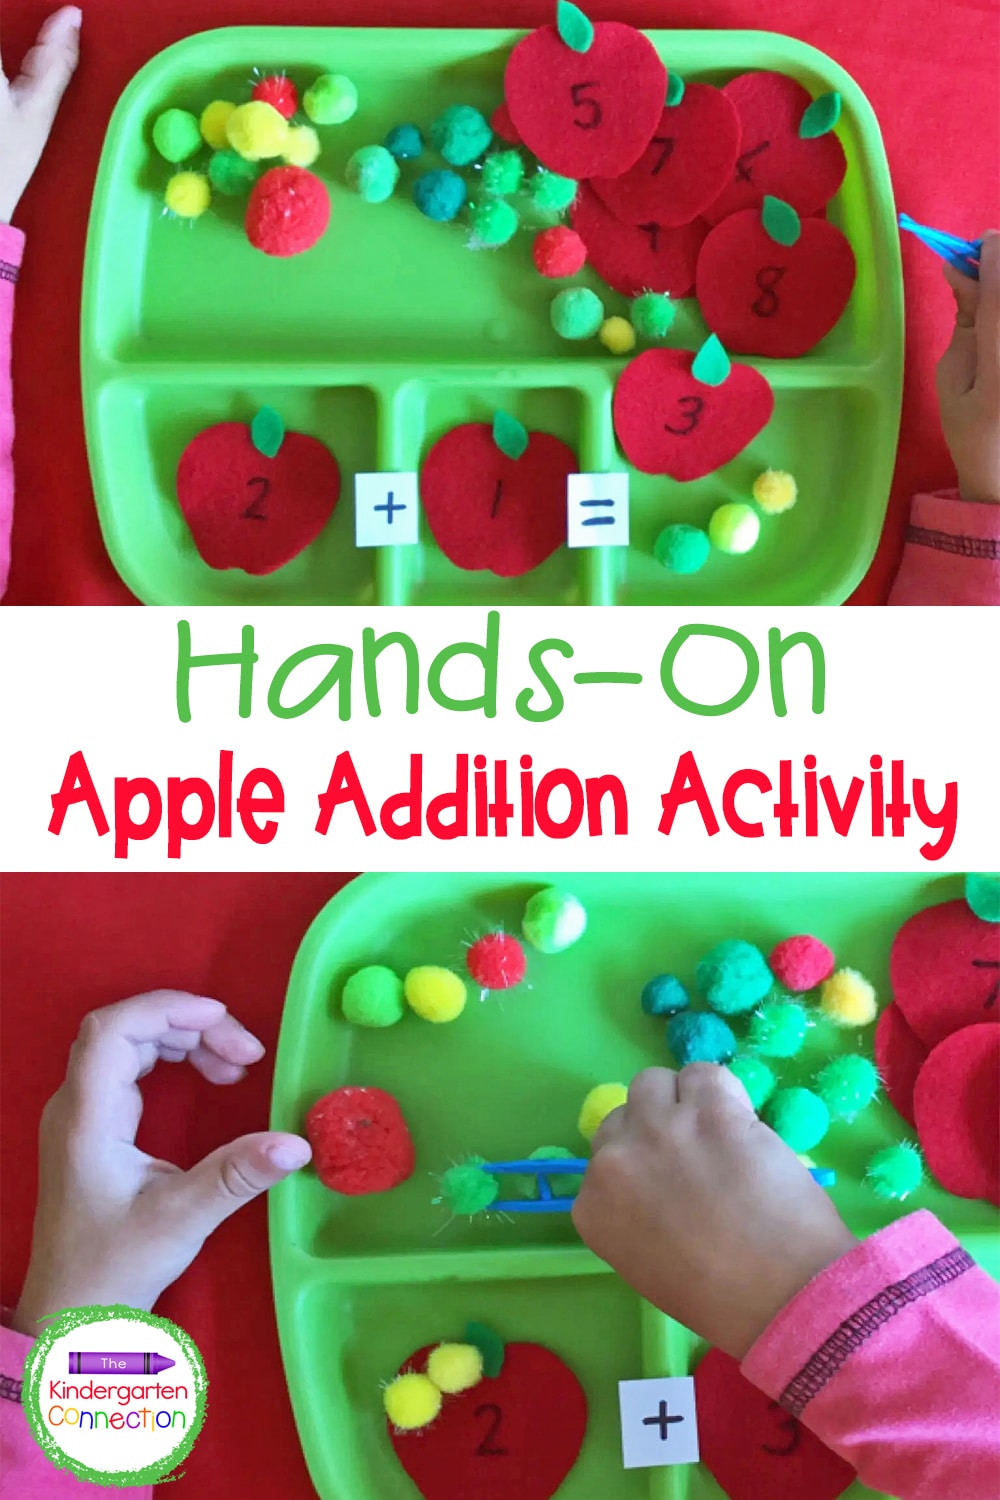 Make numbered felt apples and use pom poms as counters in this hands-on Apple Addition Activity for Kindergarten!